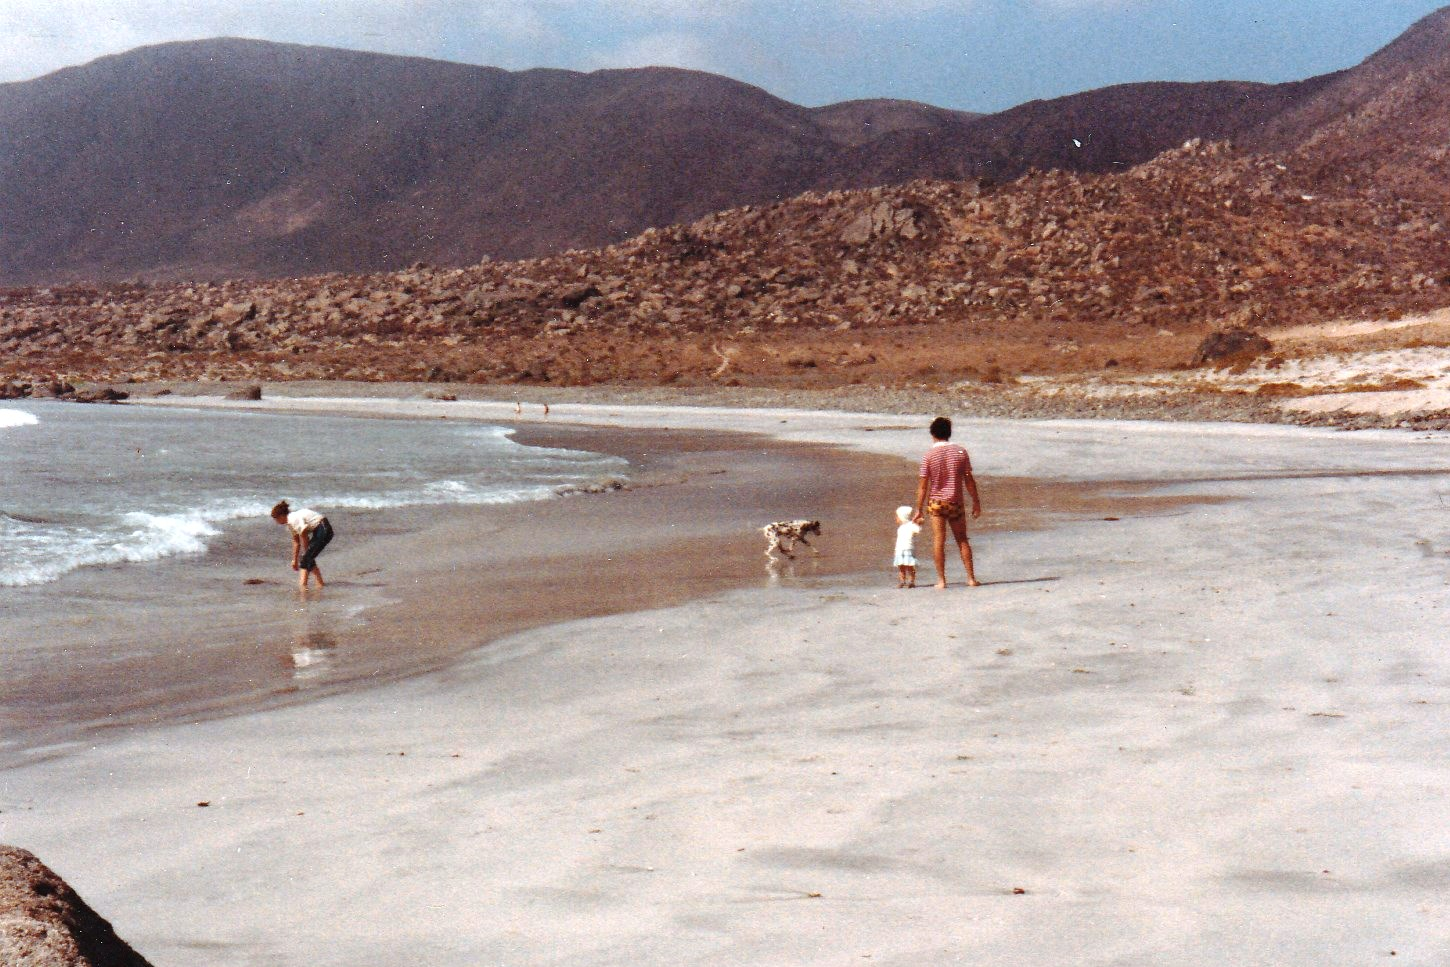 Enterreno - Fotos históricas de chile - fotos antiguas de Chile - Las Tacas en 1984